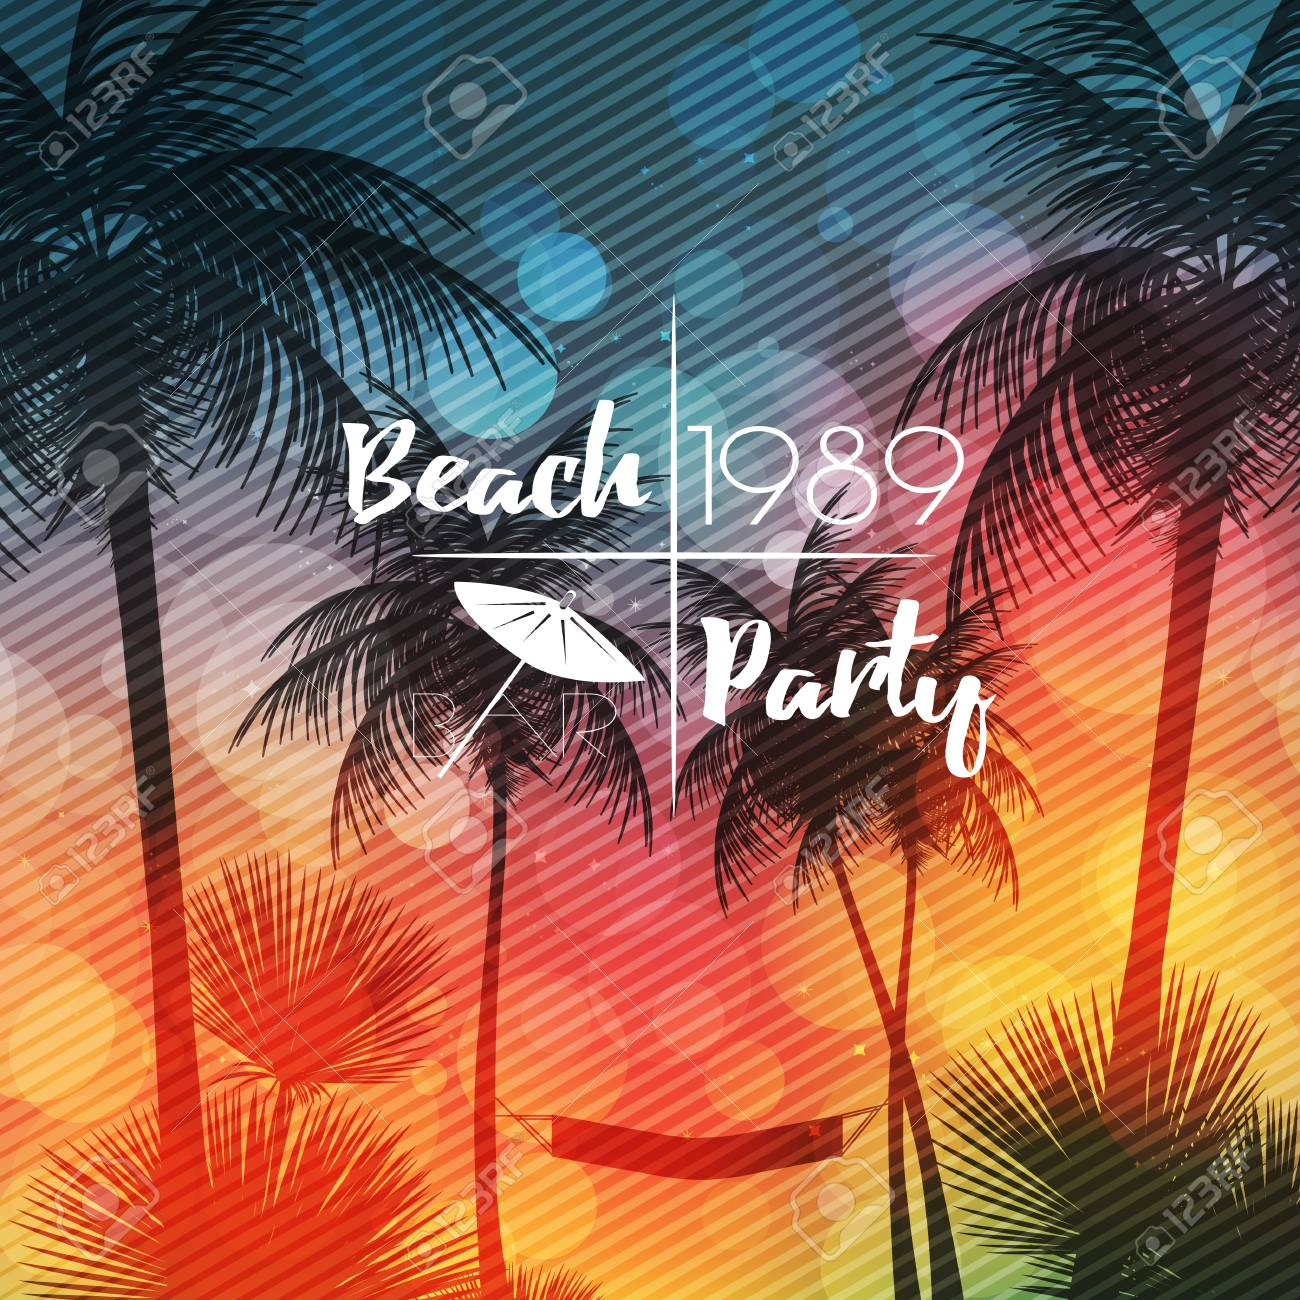 Summer Beach Party Flyer Design with Palmtrees - Vector Illustration - 100772166